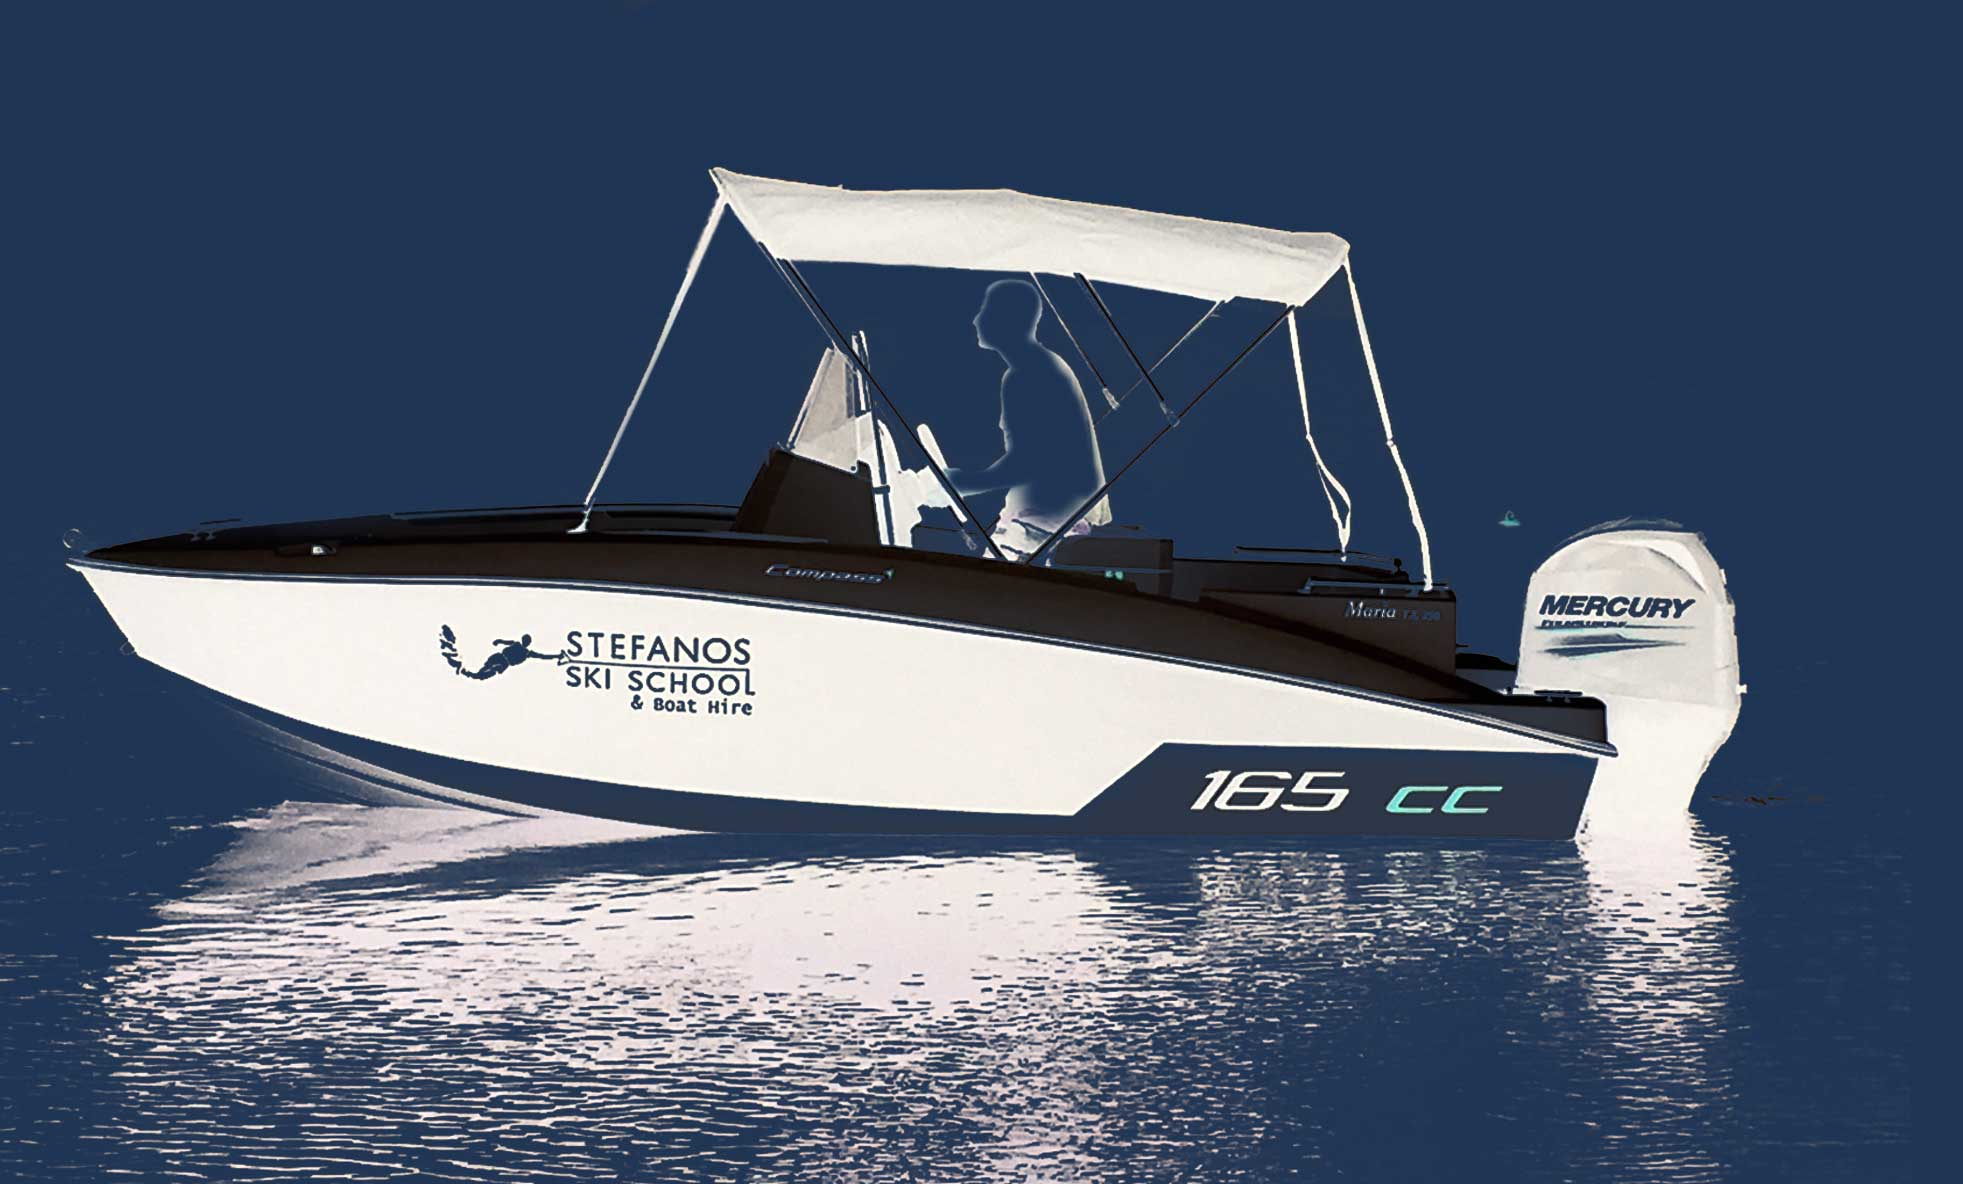 SKIATHOS BOAT HIRE speed boats for rent